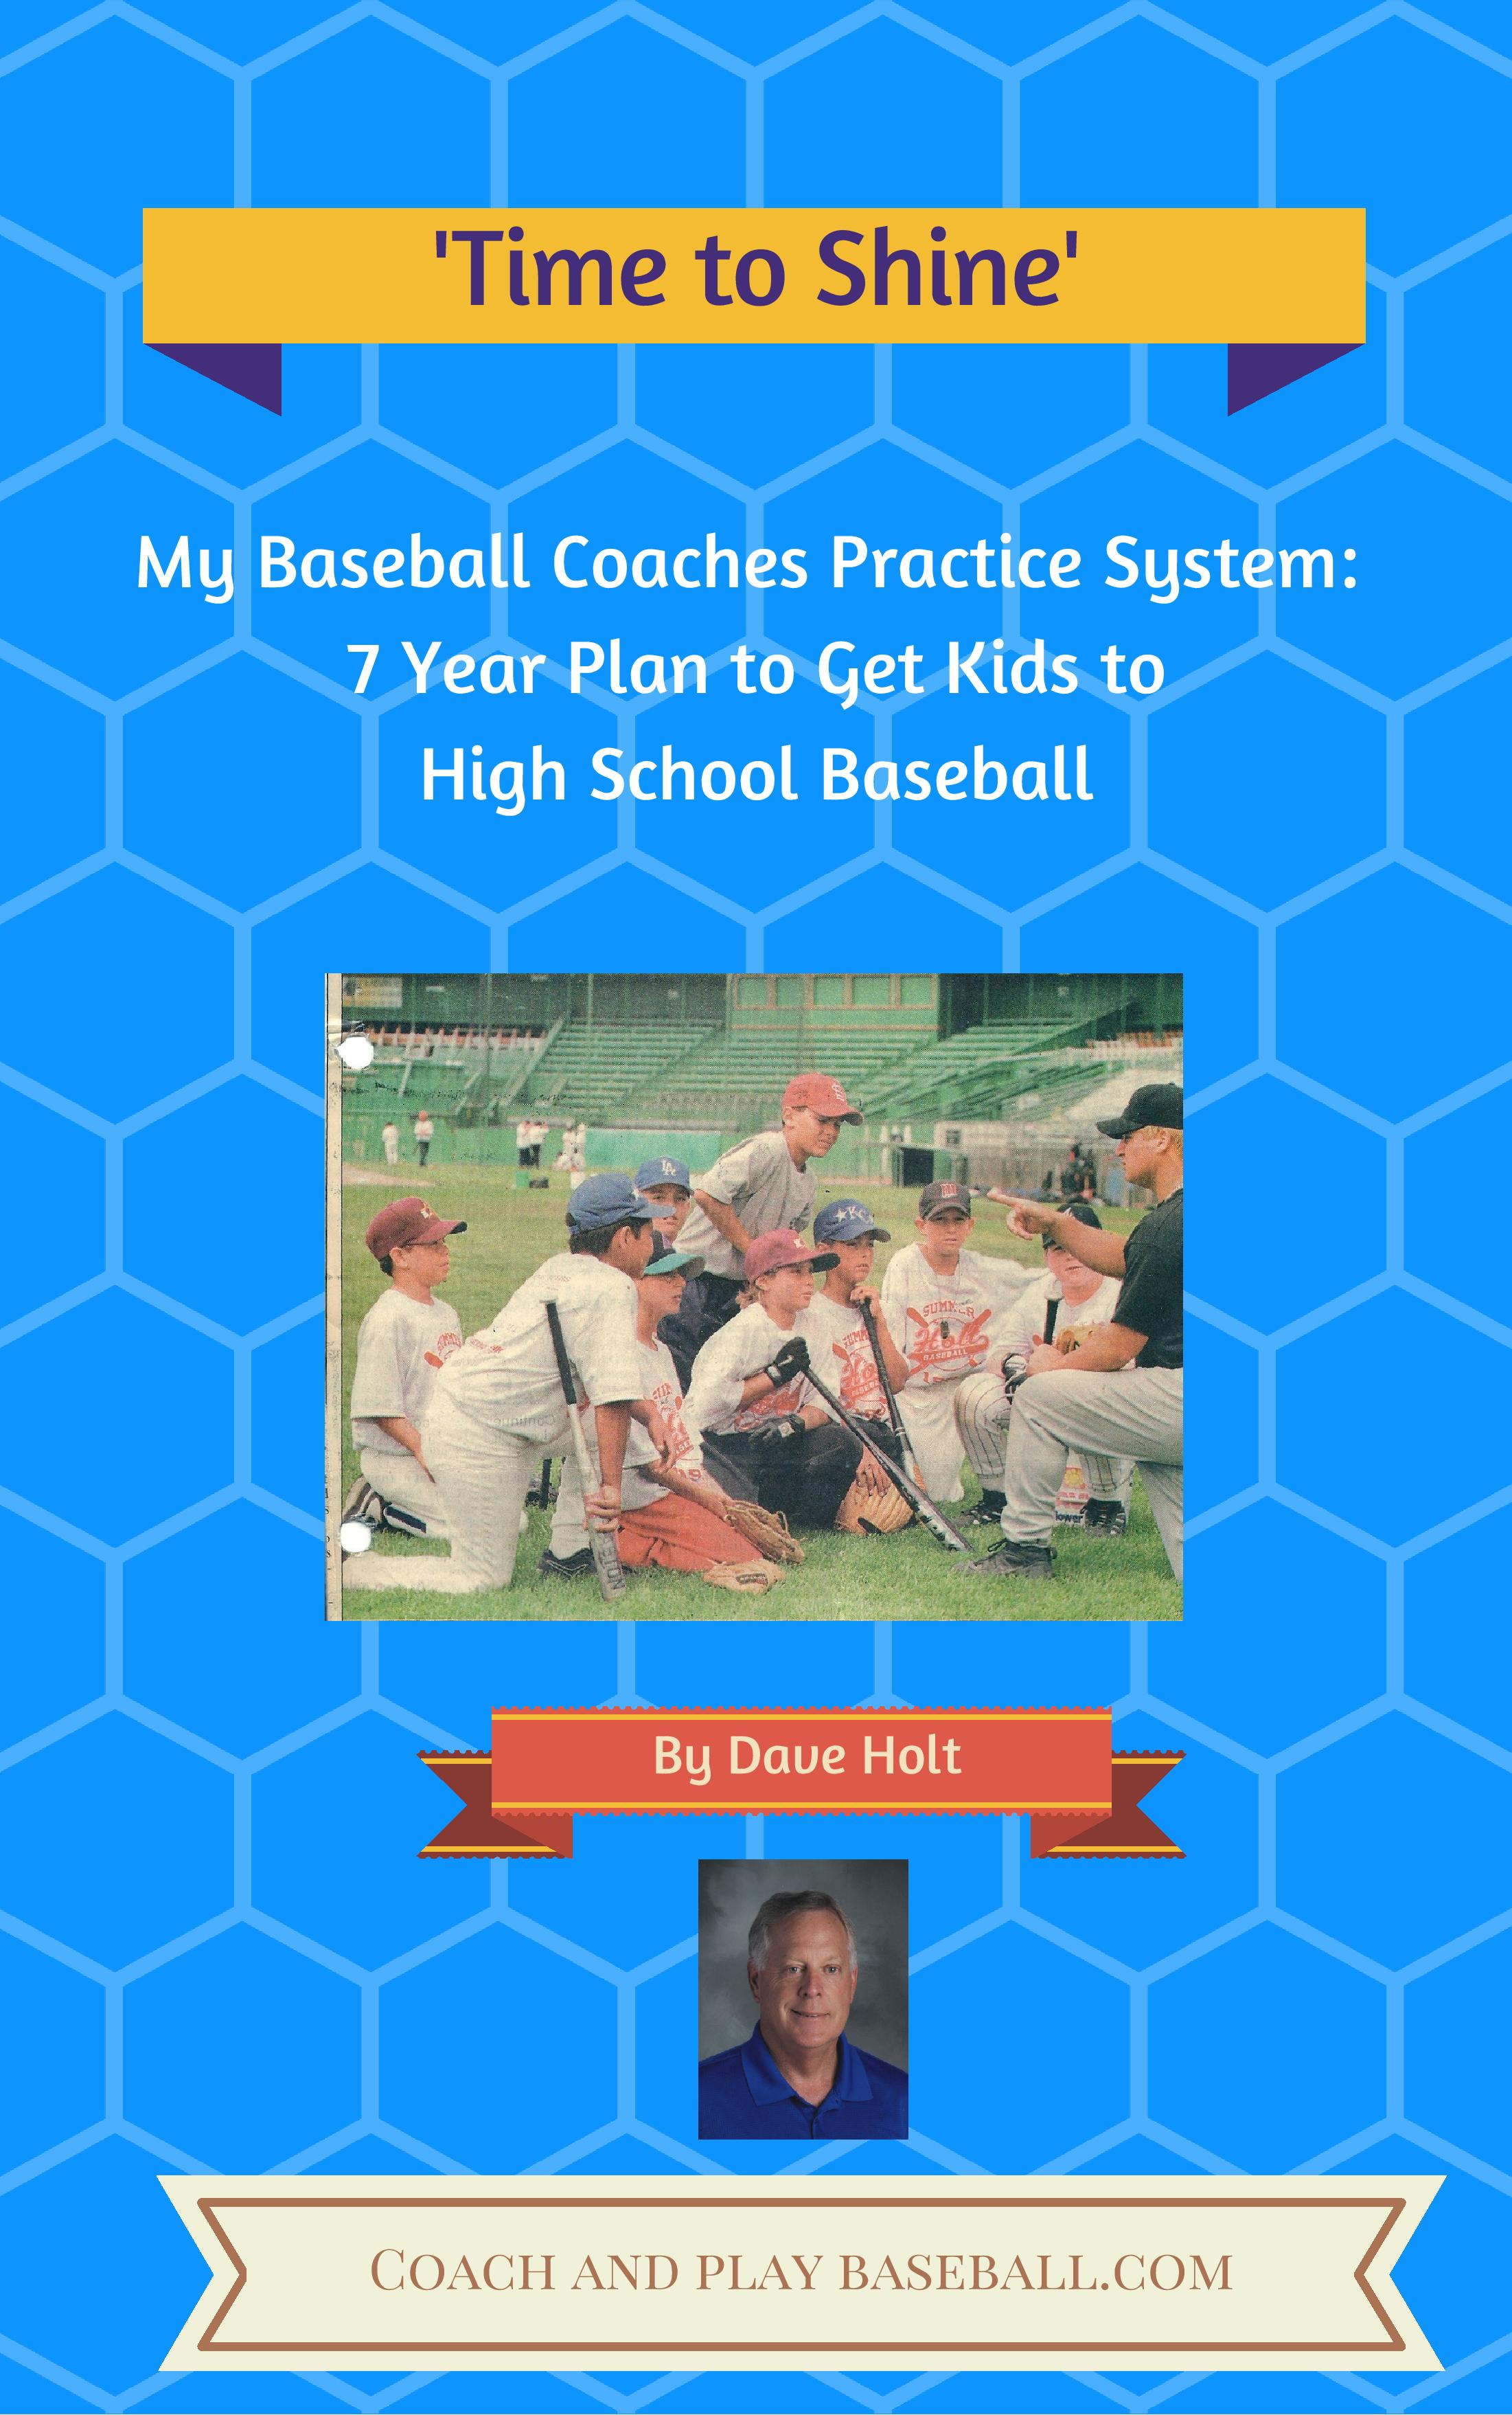 #3 'Time to Shine' Baseball Coaches Practice System